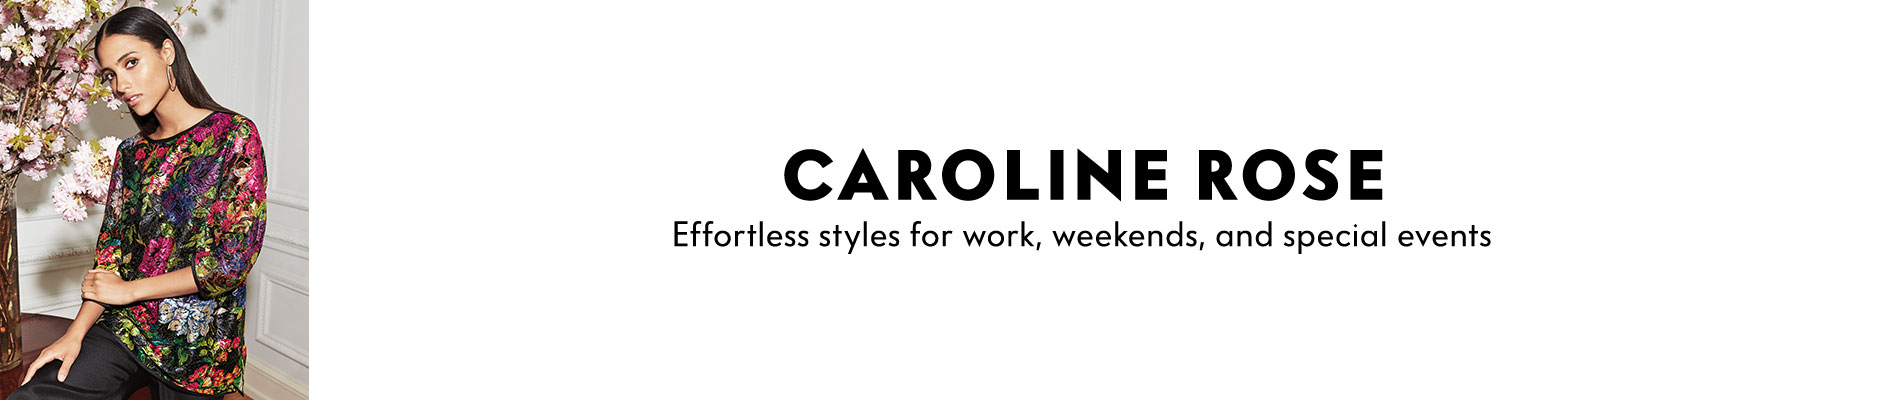 Caroline Rose effortless styles for work, weekends, and special events